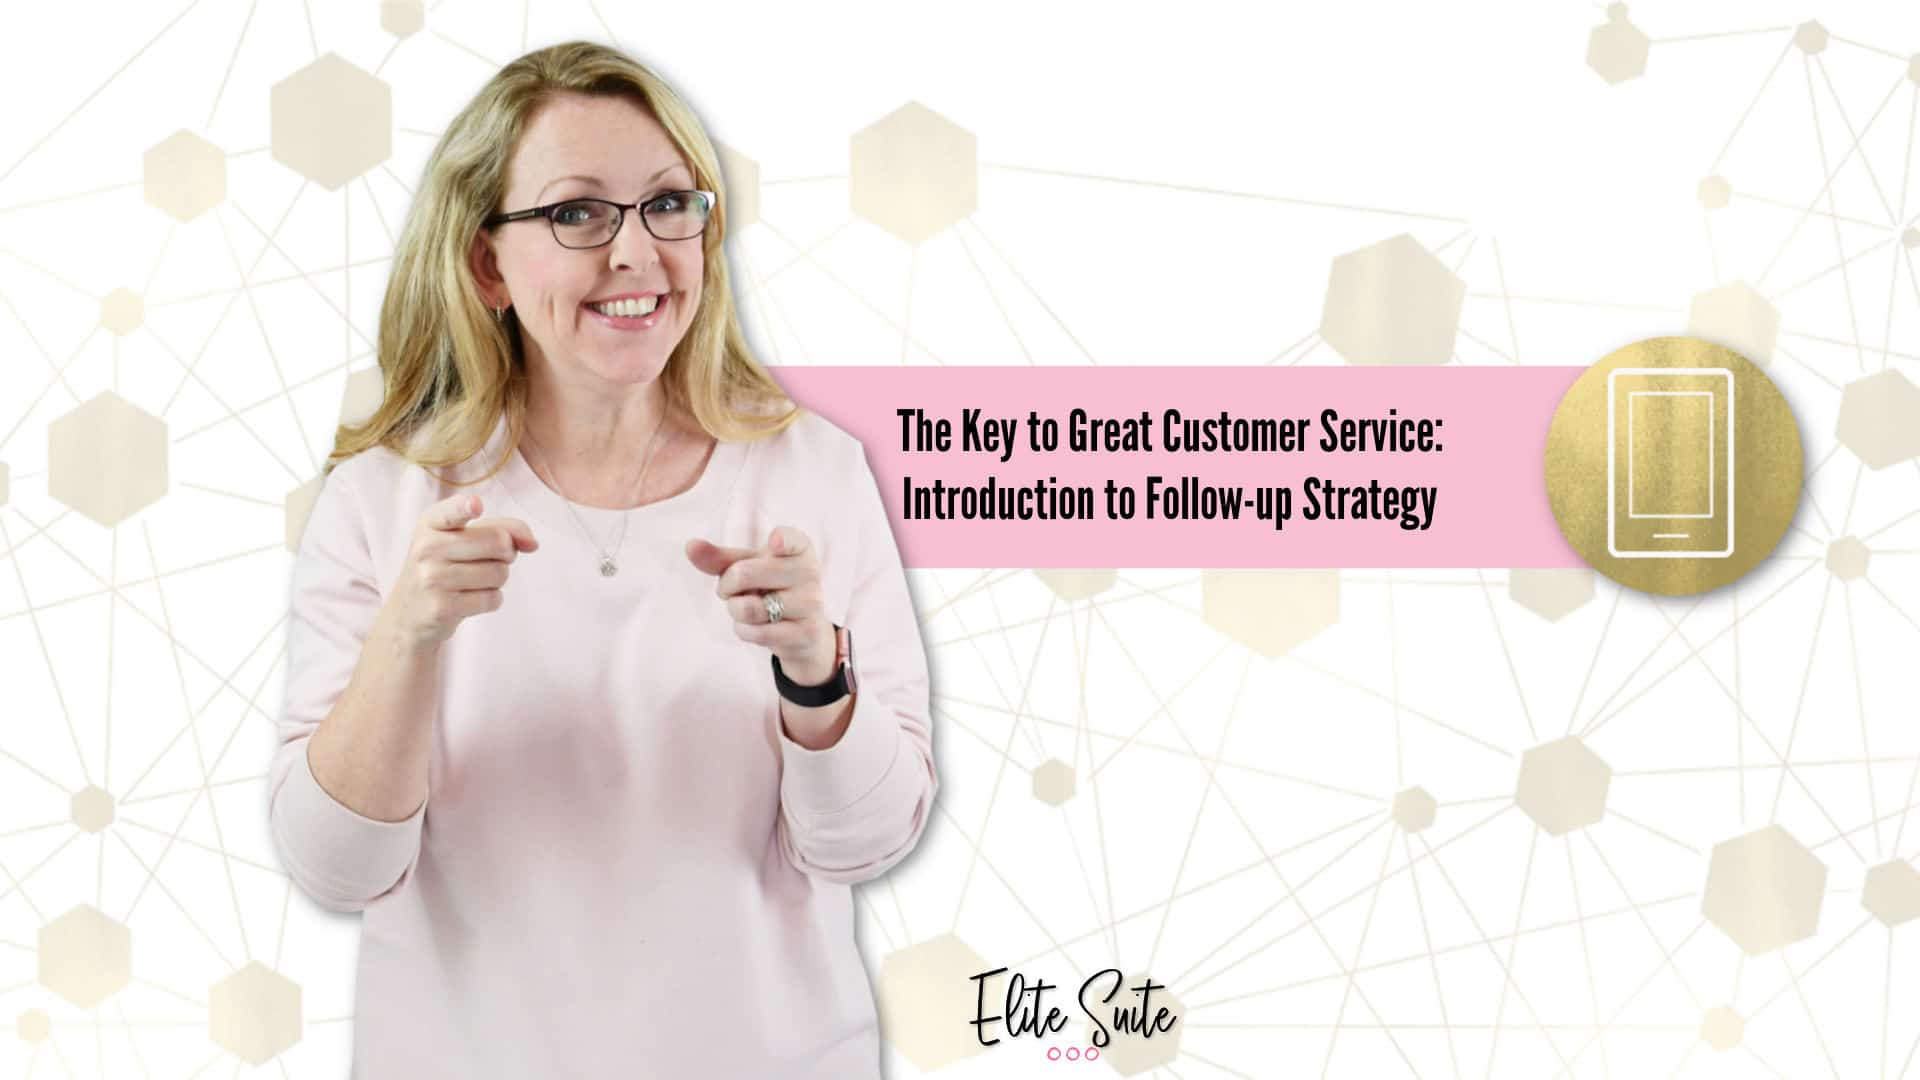 The Key to Great Customer Service: Introduction to Follow-up Strategy title overlay